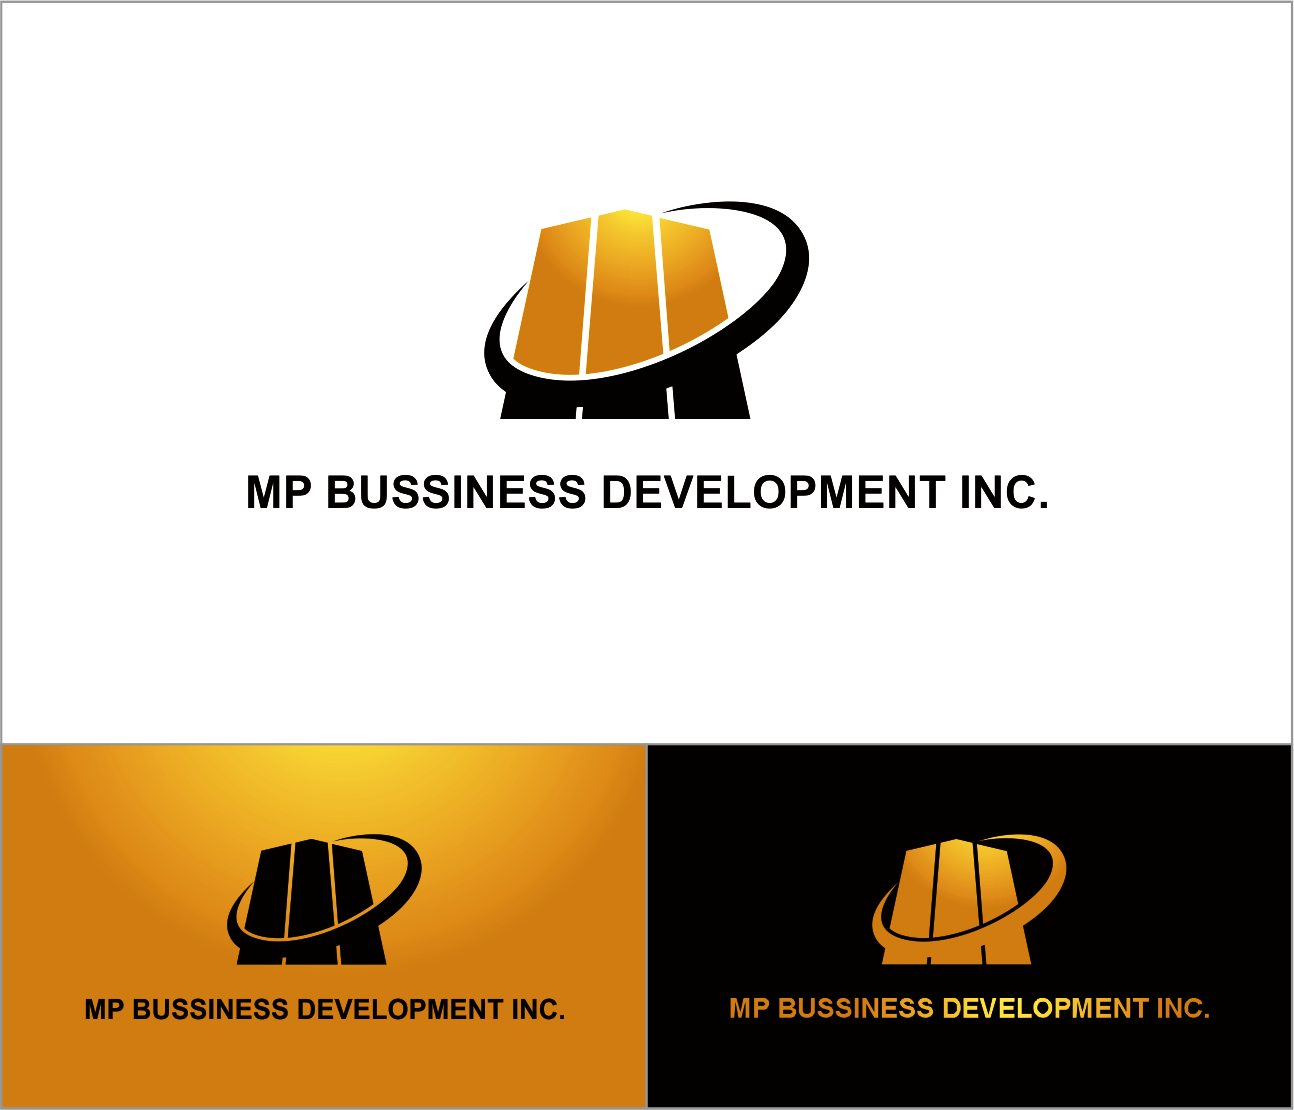 Logo Design by Armada Jamaluddin - Entry No. 179 in the Logo Design Contest MP Business Development Inc. Logo Design.